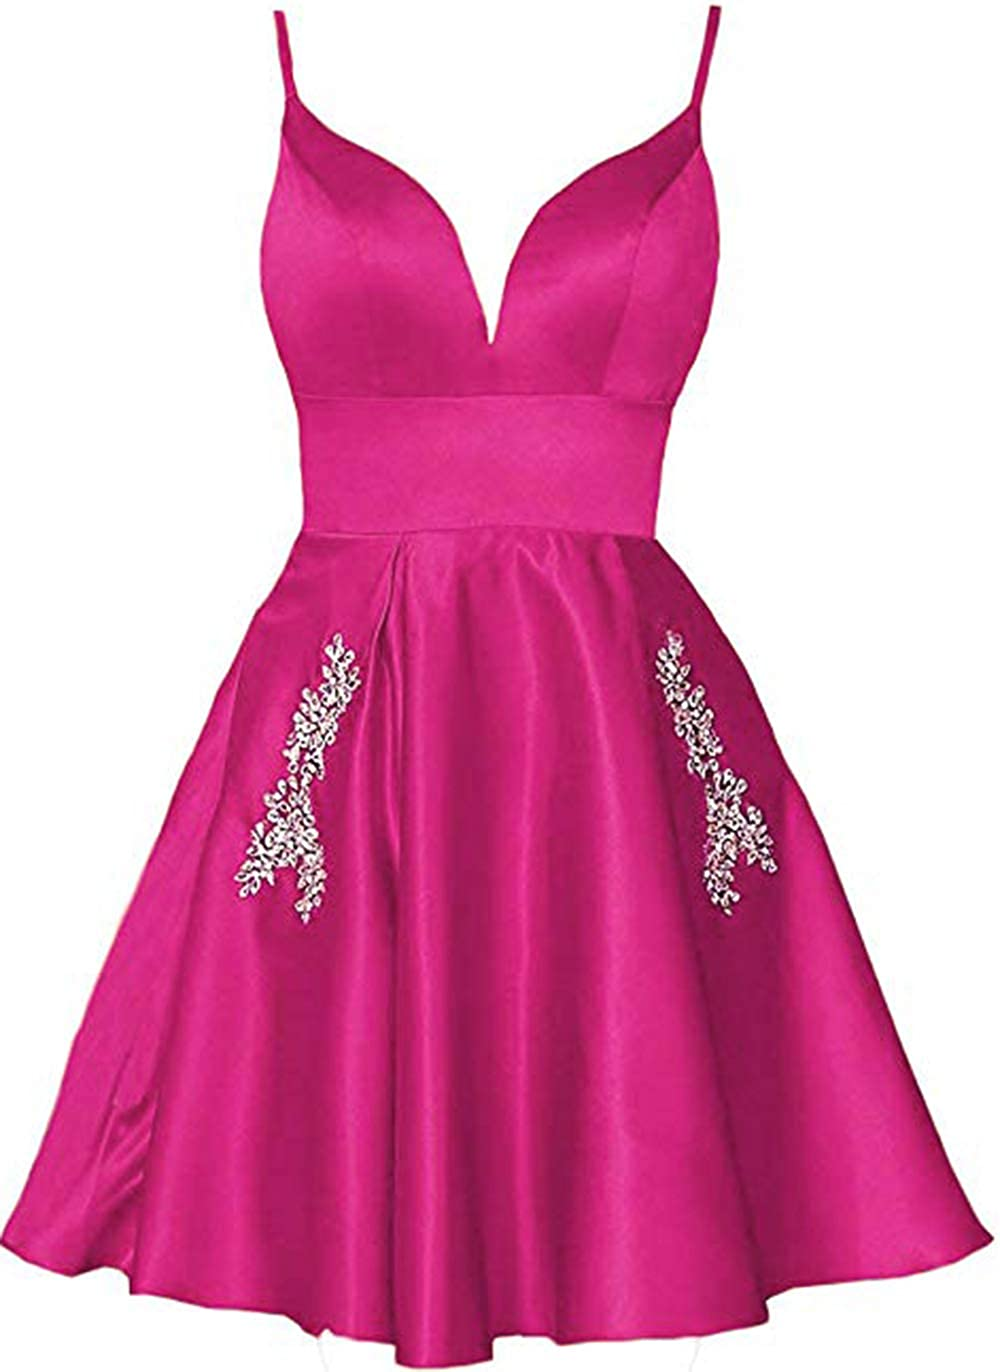 Hot Pink Ri Yun Womens Spaghetti Straps Prom Dresses Short 2019 Satin Beaded A Line Homecoming Dress with Pockets